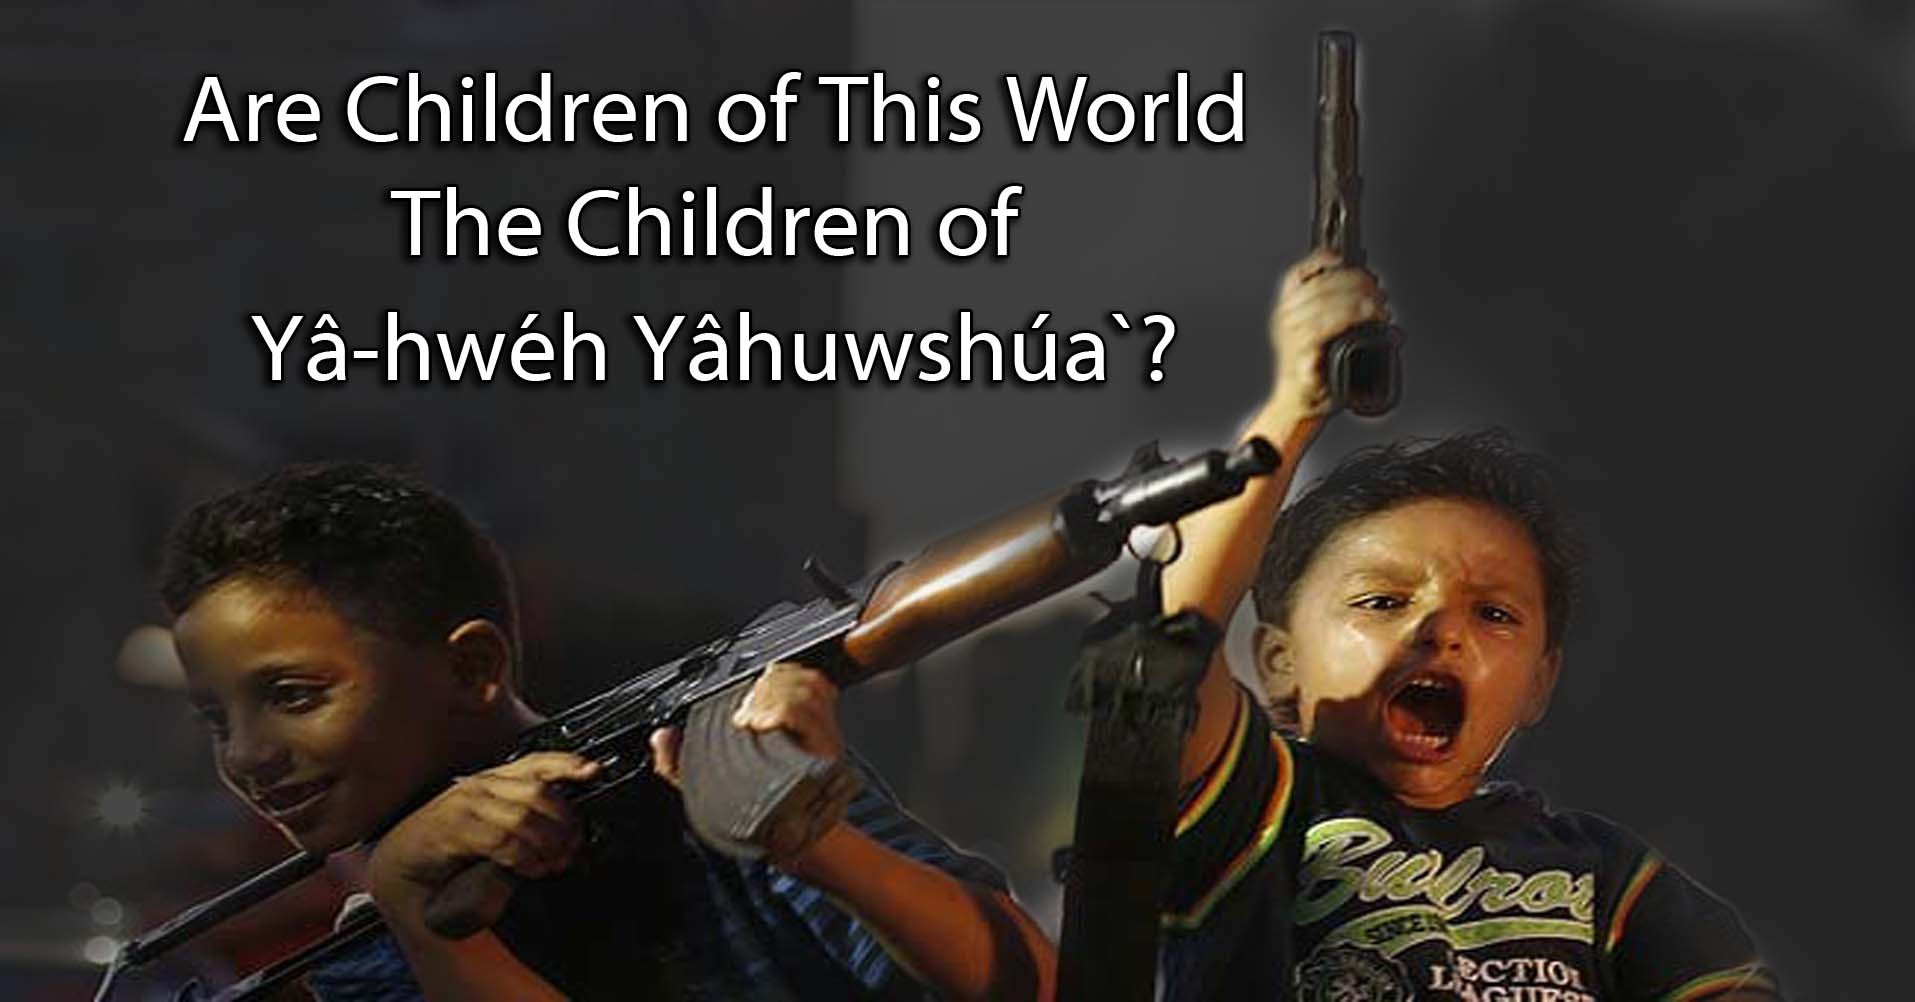 children_gaza_reuters_650_story.jpg